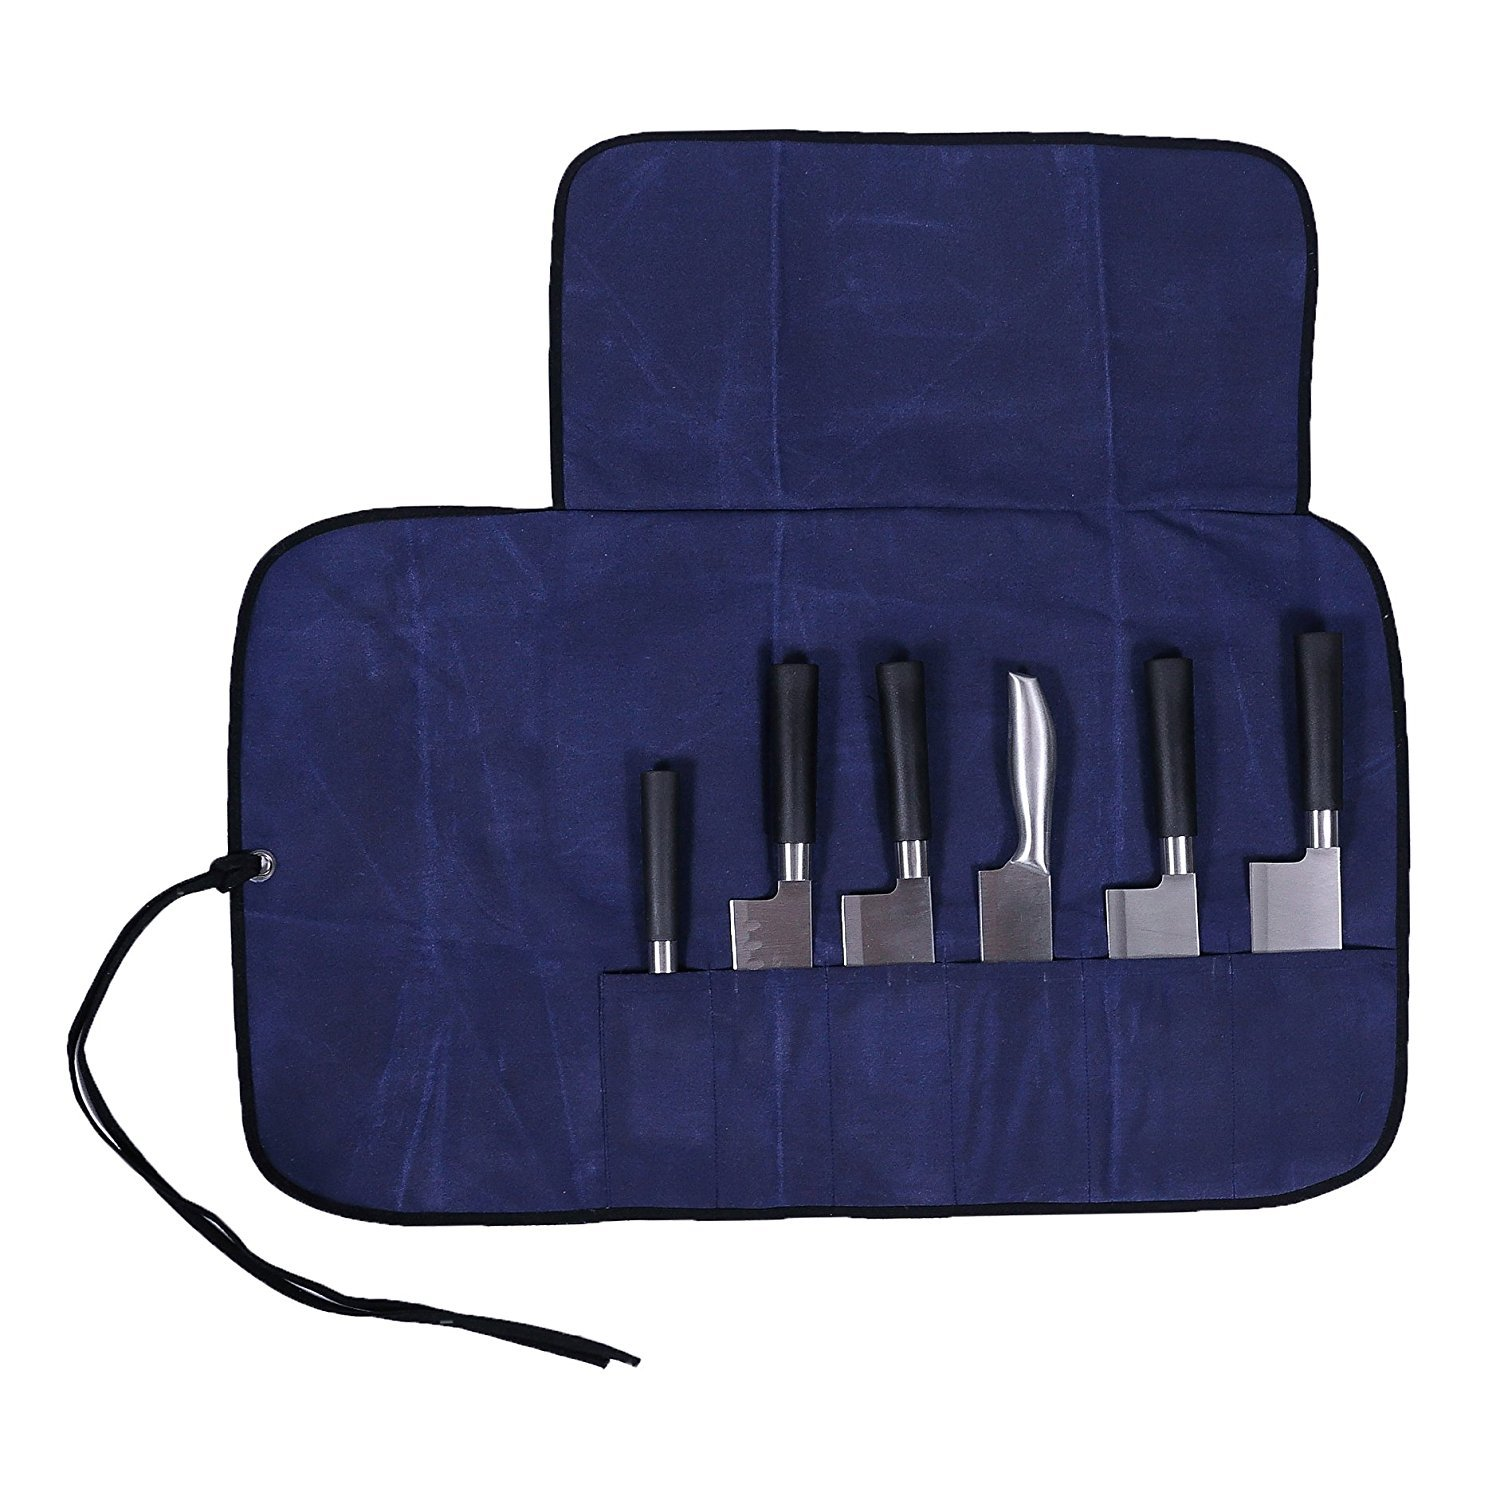 Canvas Chef's Knife Roll Waterproof Utensil Knife Holder Storage Bag Multi Purpose Knife Roll Pouch CYDD04 (Blue) by CHENG YI